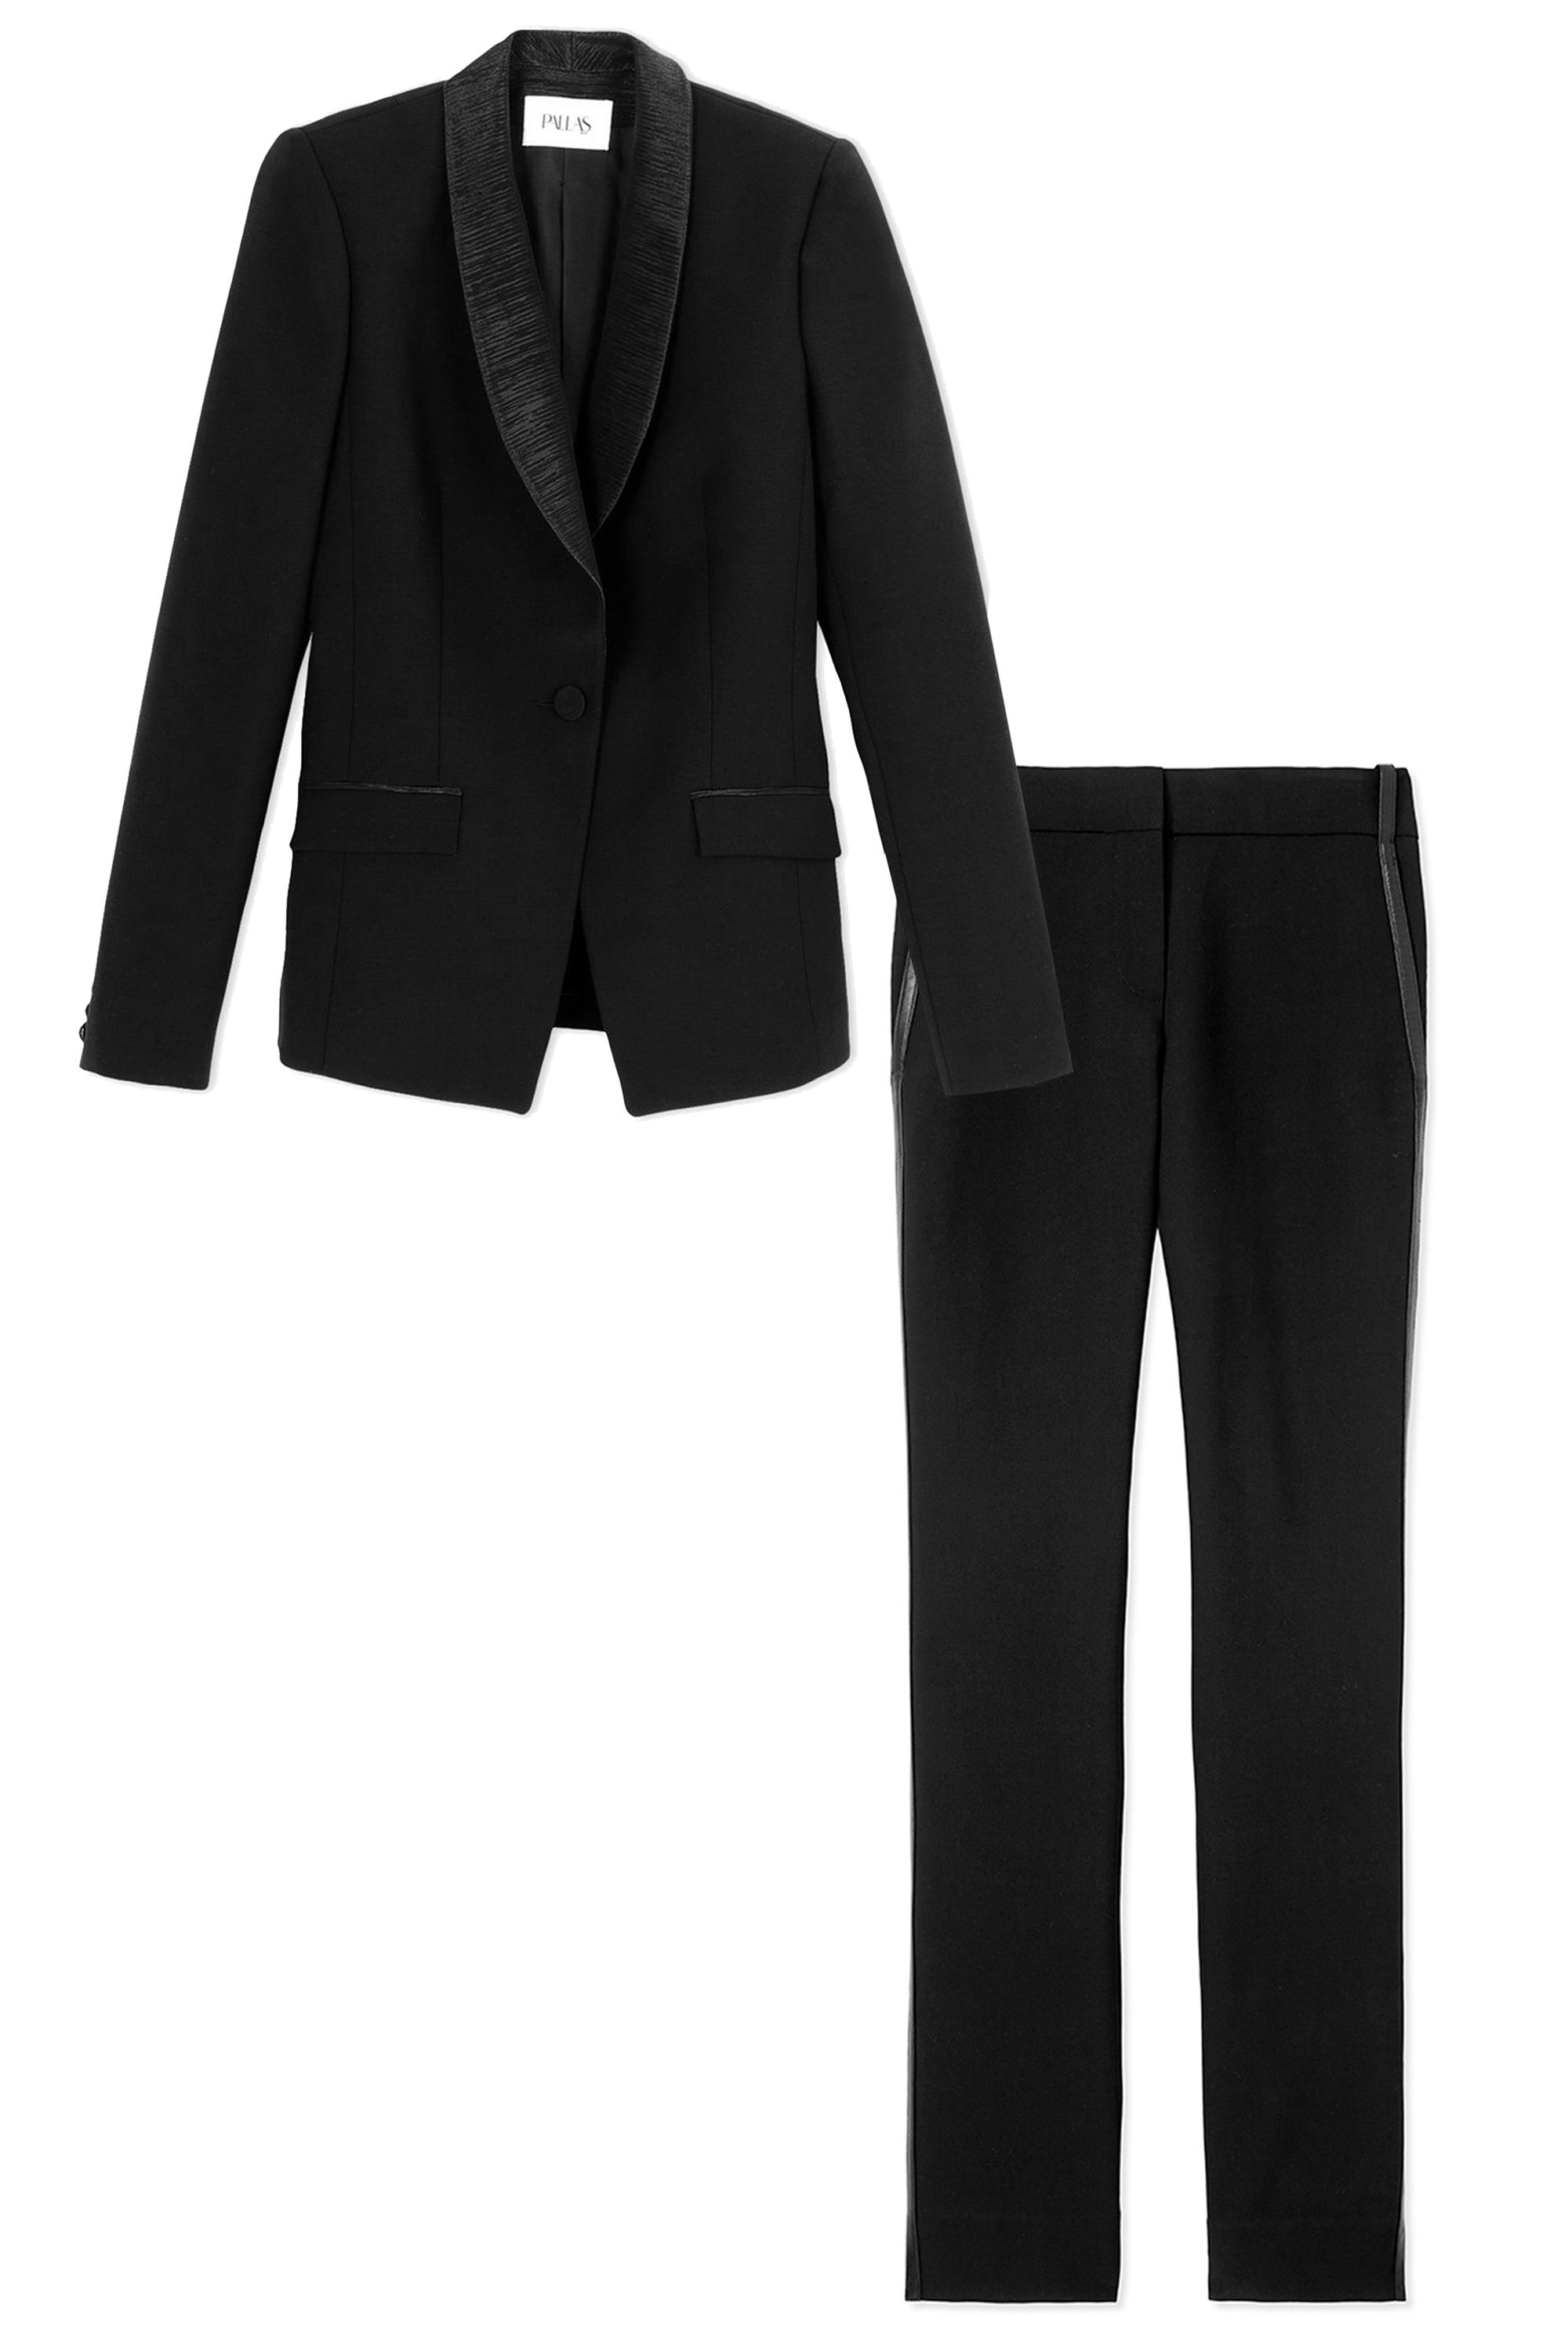 "<p><em><strong>Pallas </strong>blazer, $1,605, <a href=""https://shop.harpersbazaar.com/designers/p/pallas-/black-open-back-blazer-5905.html"" target=""_blank"">shopBAZAAR.com</a>&#x3B;</em><em> <strong>Kimora Lee Simmons</strong> trousers, $600, <a href=""https://shop.harpersbazaar.com/Designers/K/Kimora-Lee-Simmons/Straight-Leg-Trousers-5547.html"" target=""_blank"">shopBAZAAR.com</a></em><span class=""redactor-invisible-space""><a href=""https://shop.harpersbazaar.com/Designers/K/Kimora-Lee-Simmons/Straight-Leg-Trousers-5547.html""><em></em></a></span></p>"